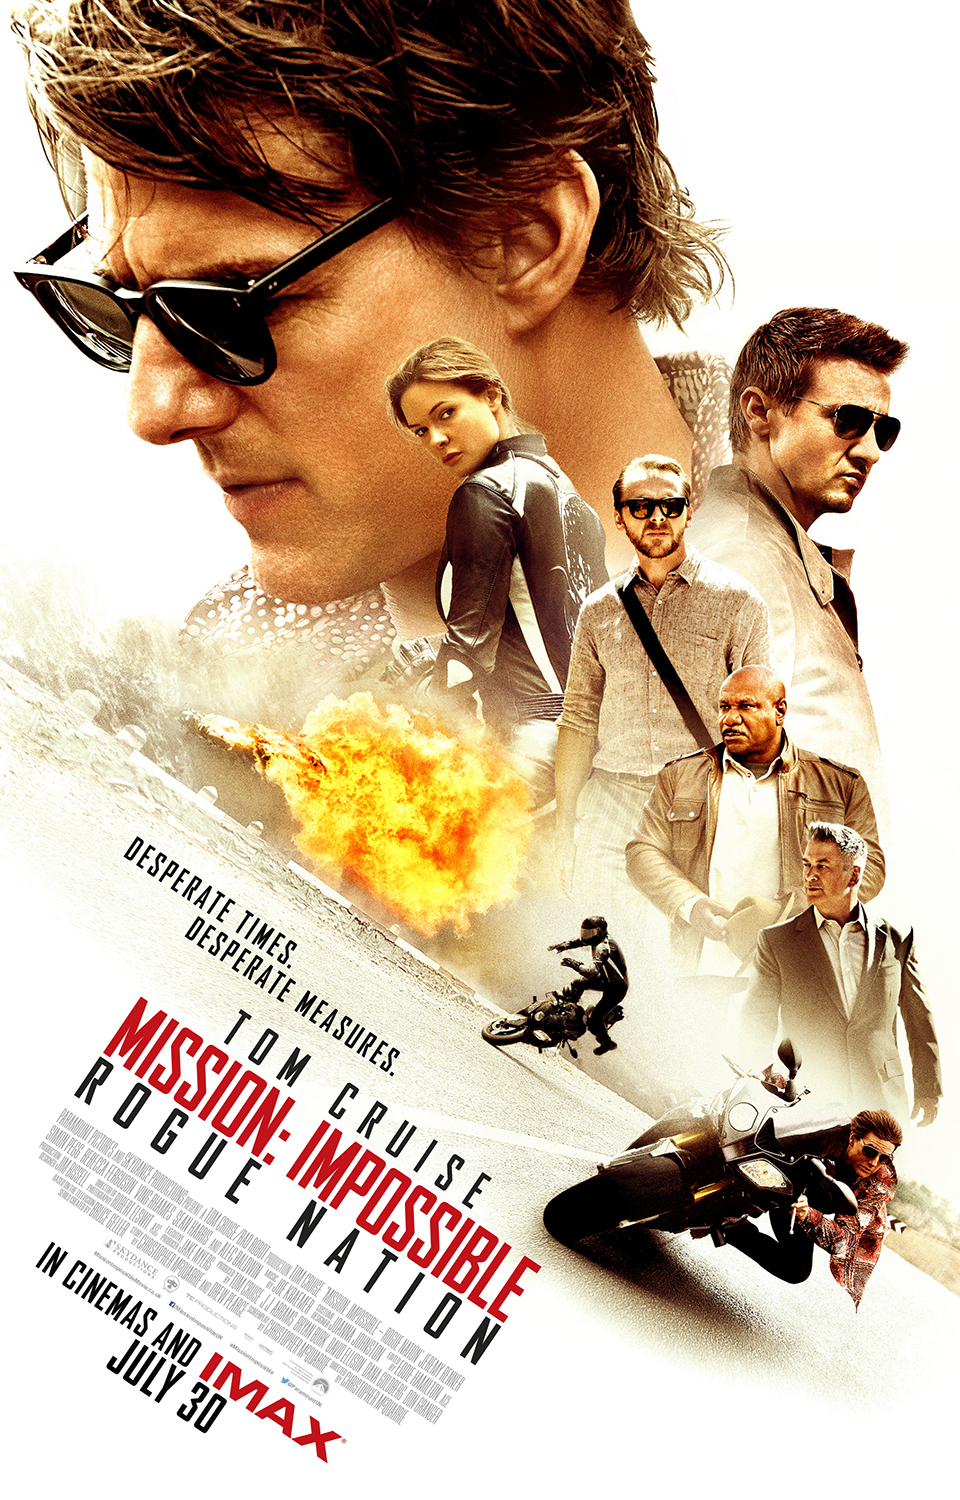 New releases include Mission: Impossible - Rogue Nation, Vacation and more